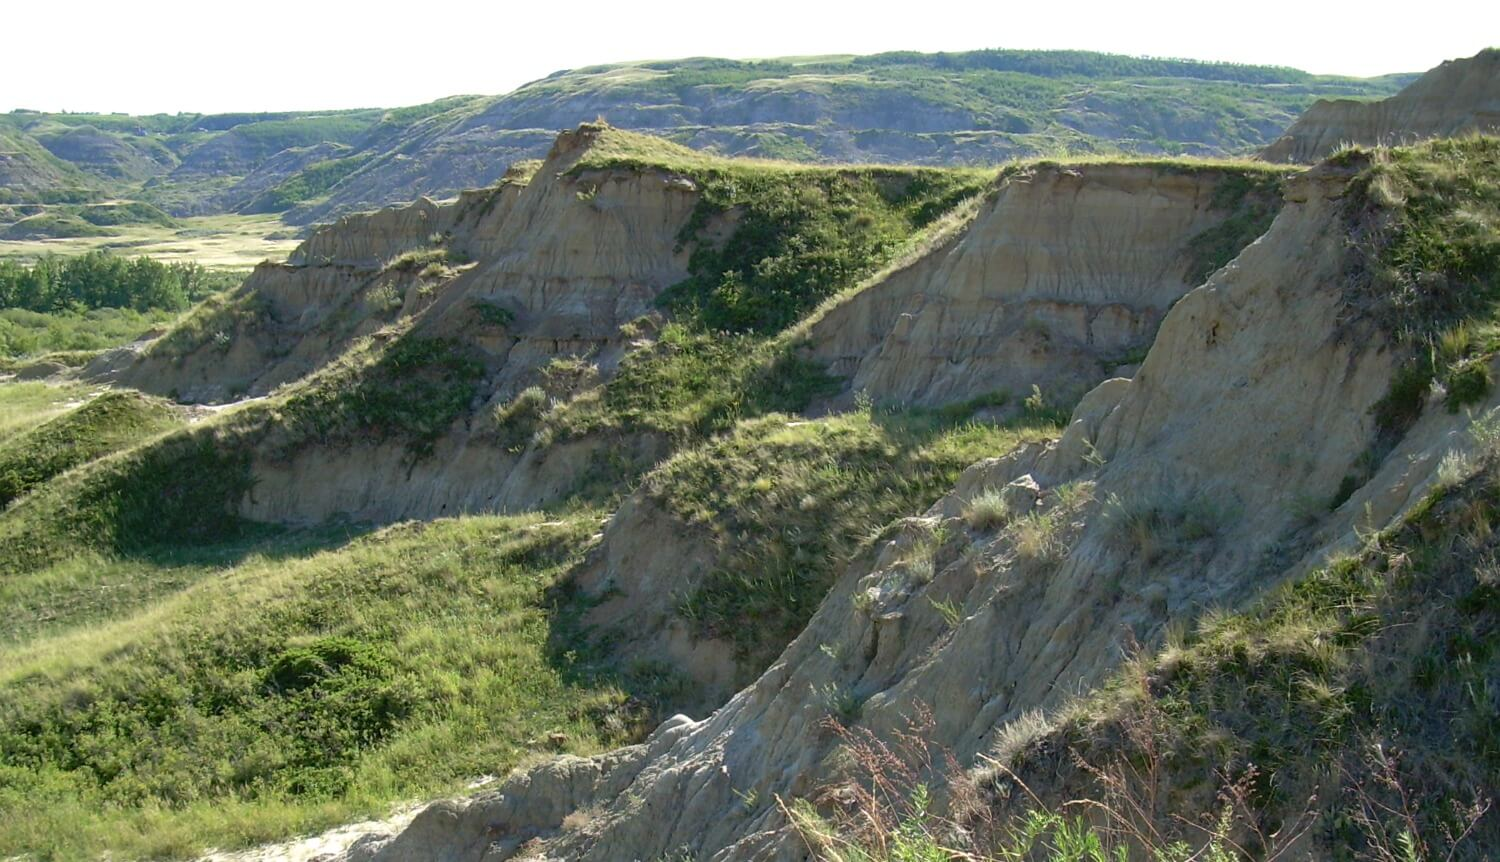 From a surface fossil hunting trip in central Alberta, 2008.